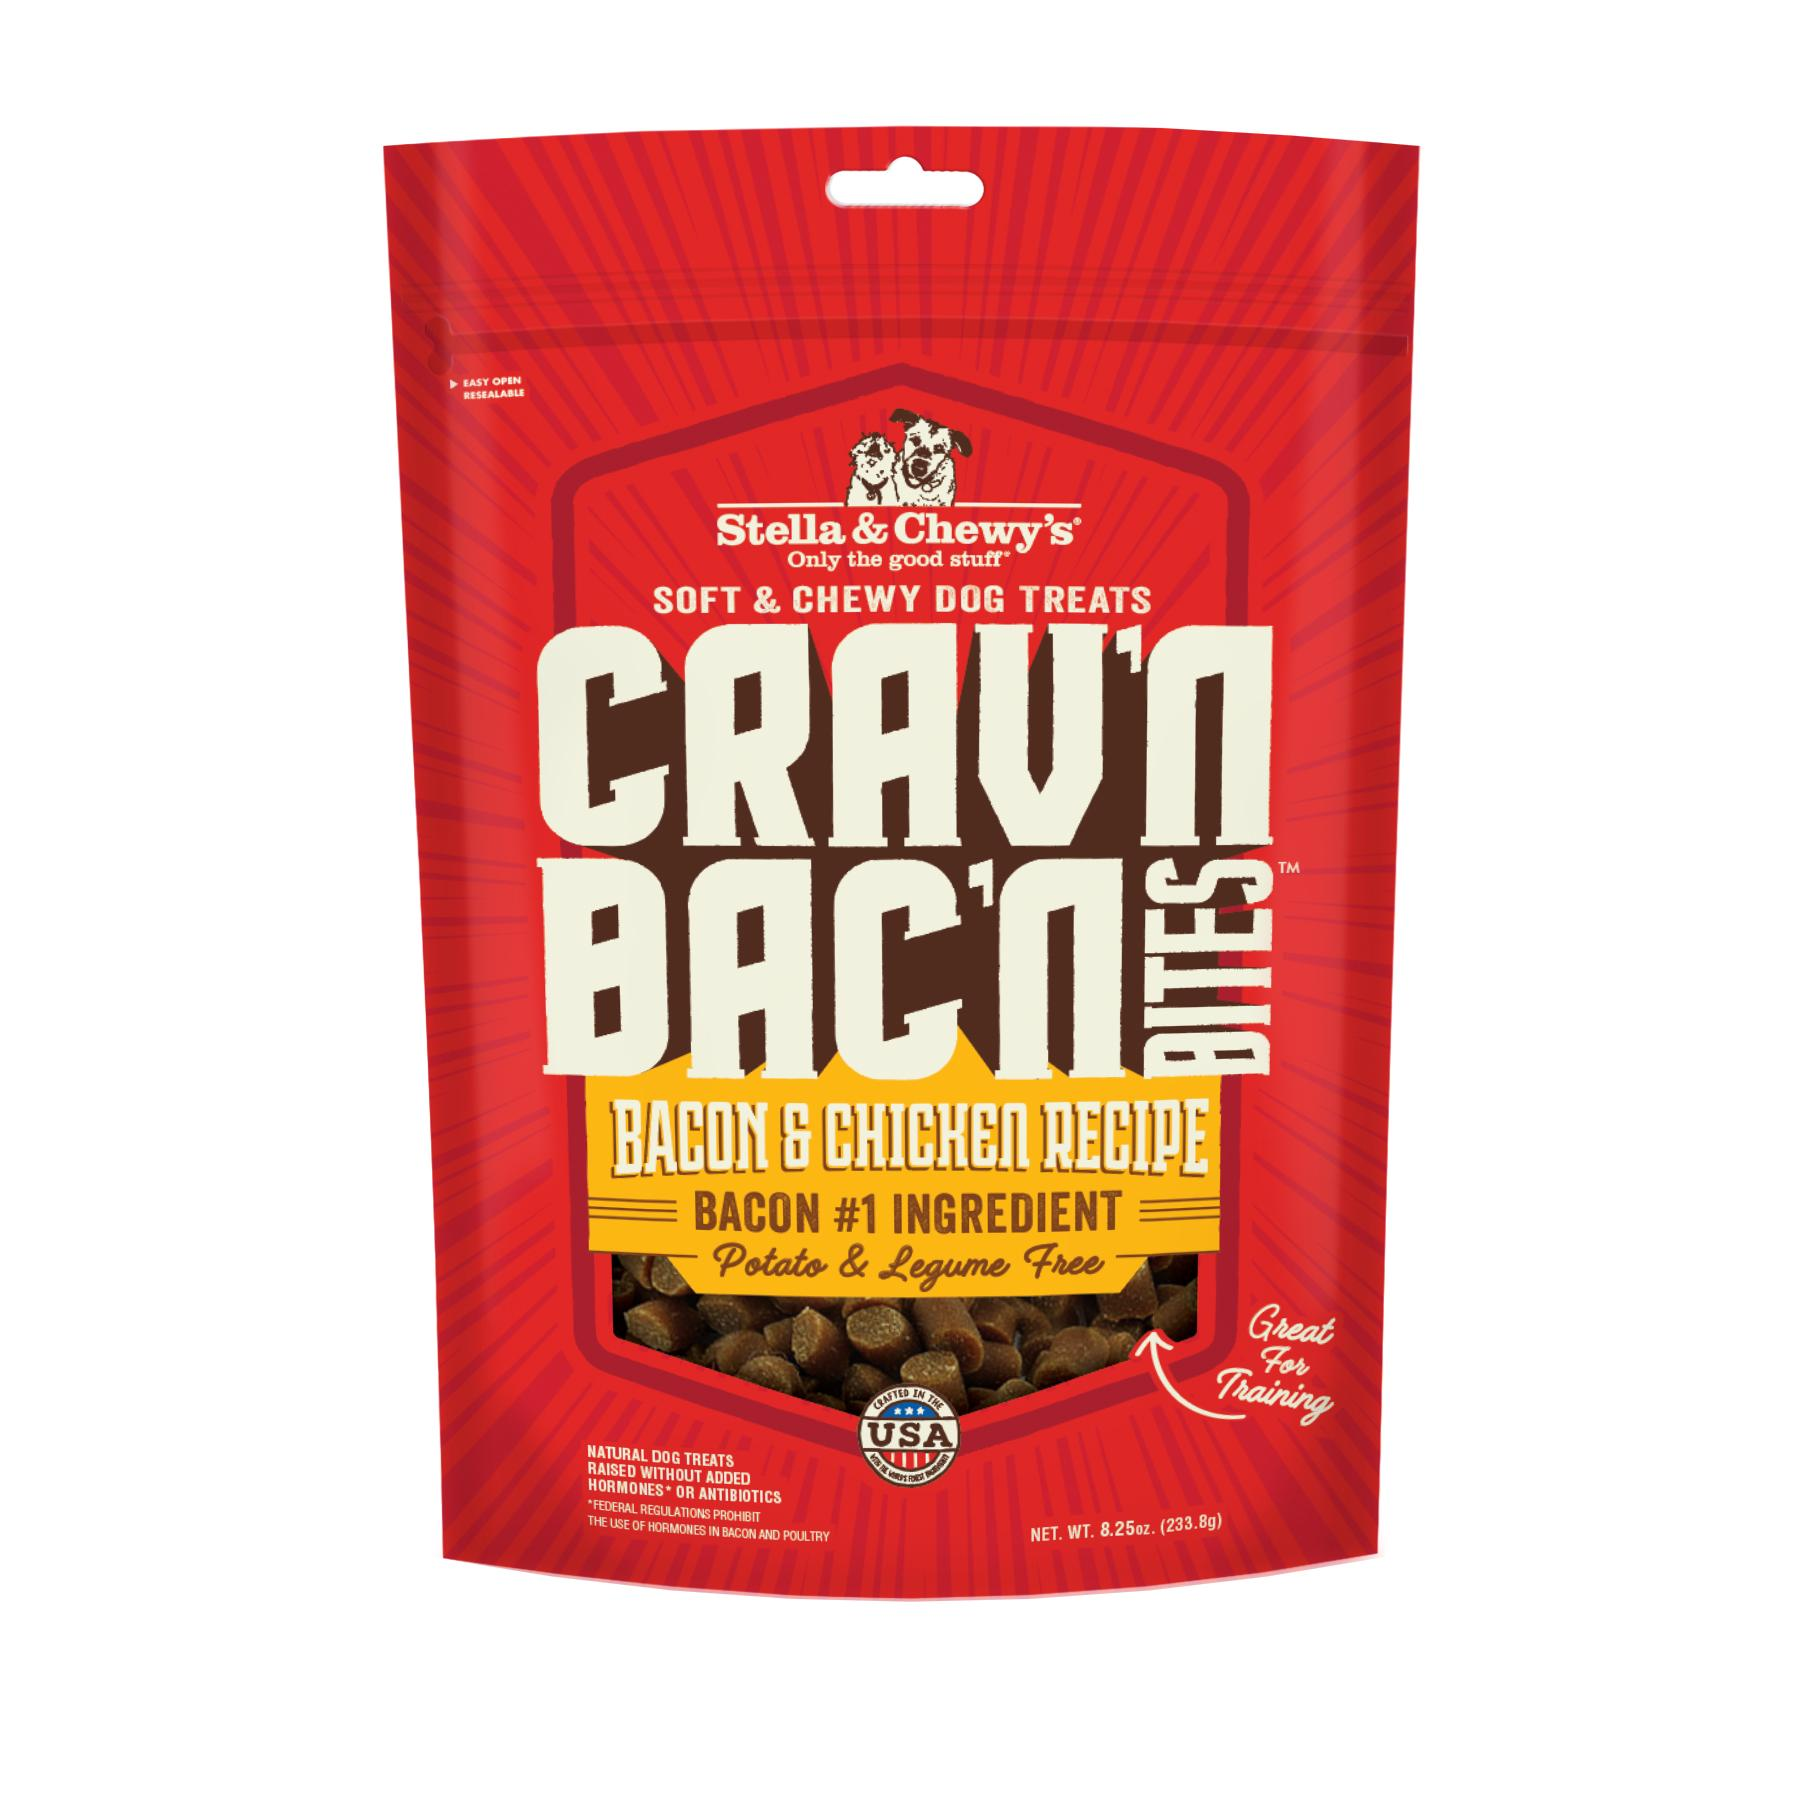 Stella & Chewy's Crav'n Bac'n Bites Bacon & Chicken Recipe Dog Treats, 8.25-oz